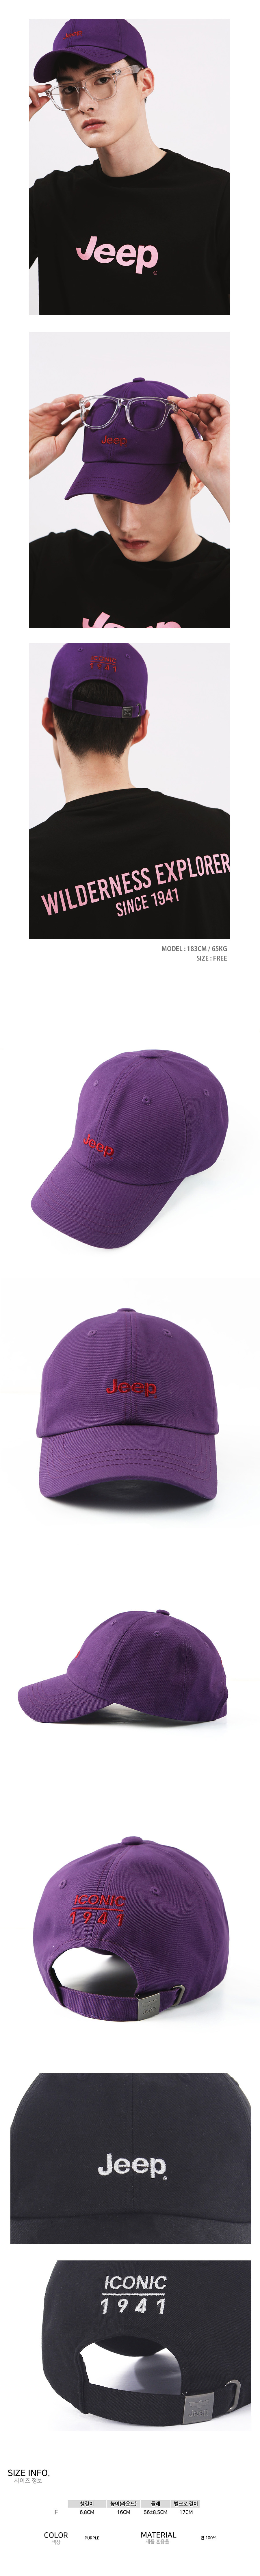 ICONIC Stitches Cap (GK5GCU151UP)